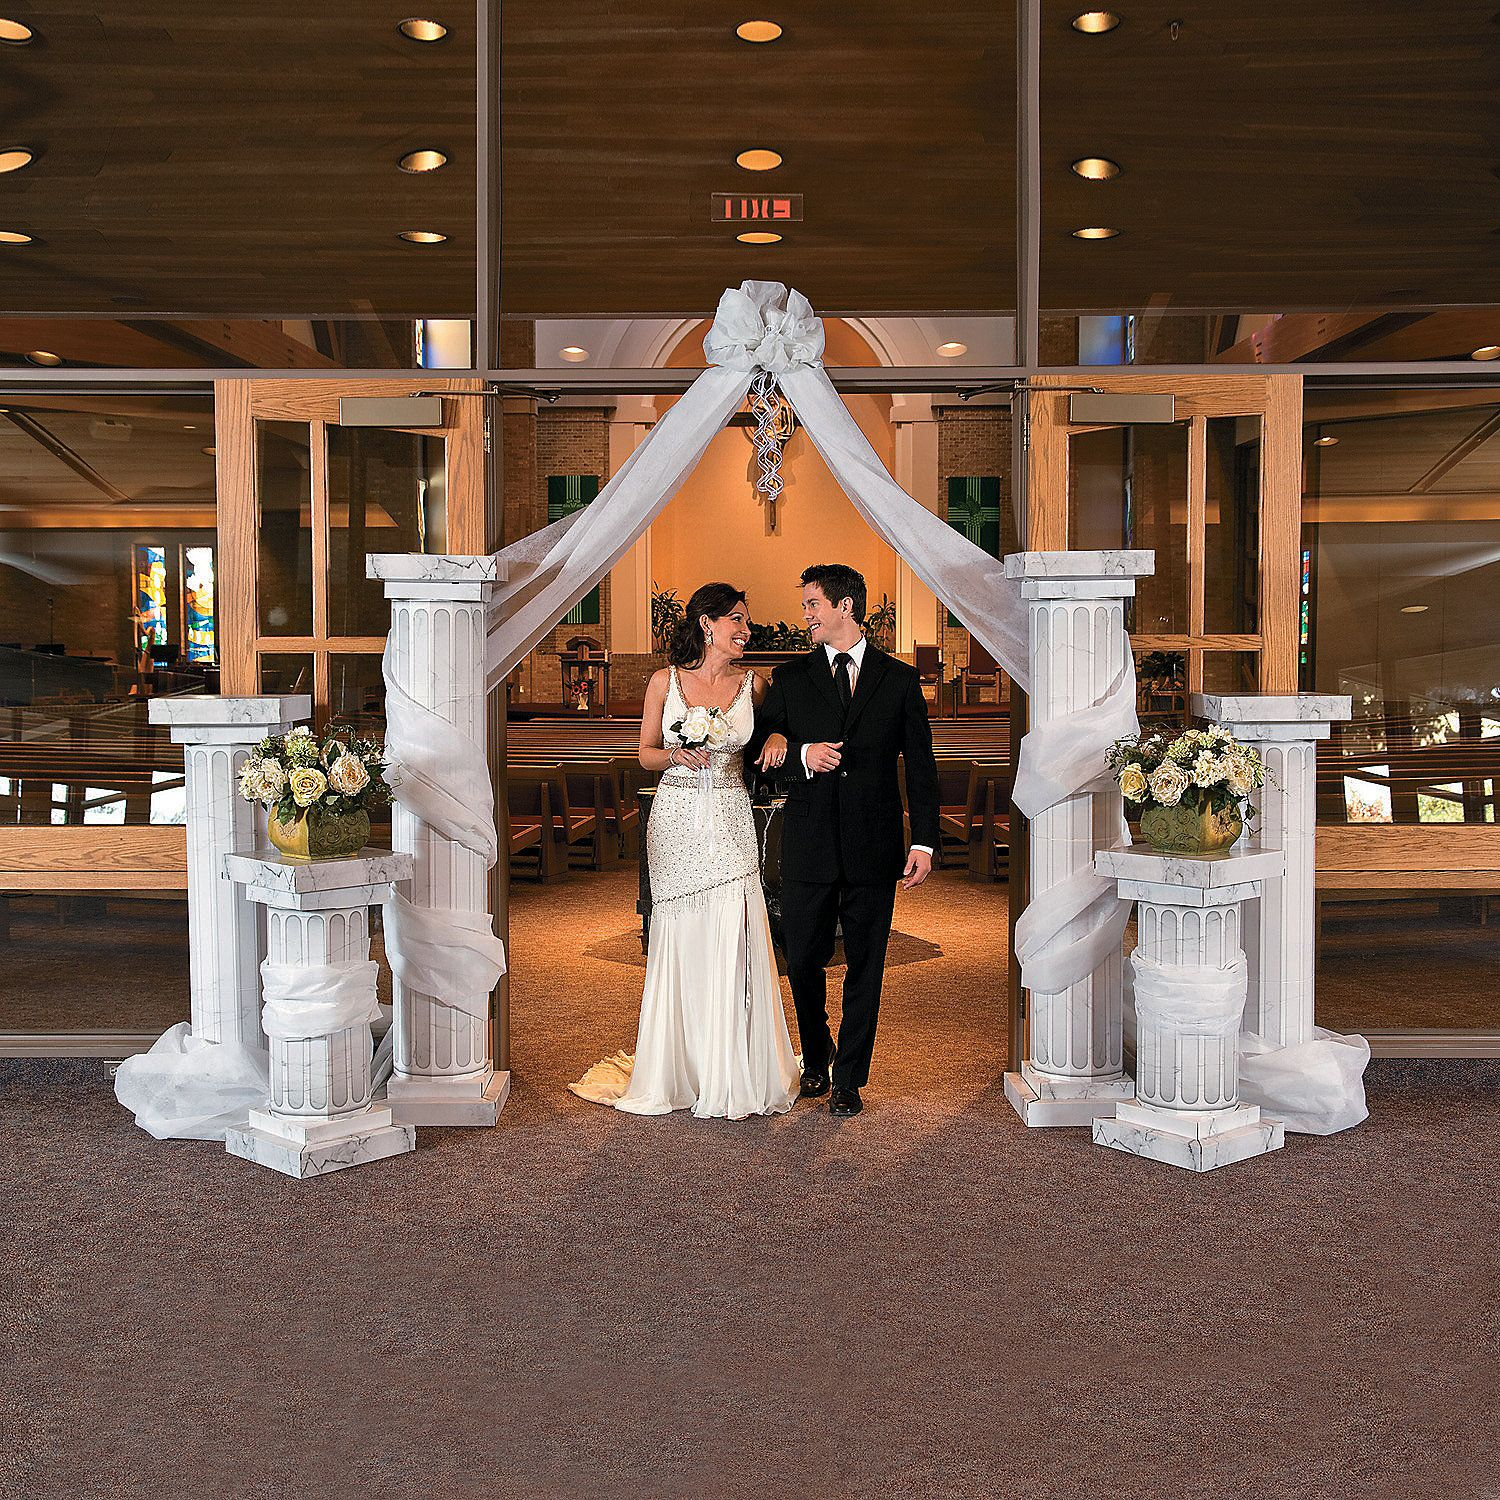 3400 Two Tall Pillars Wedding Columns Orientaltrading More